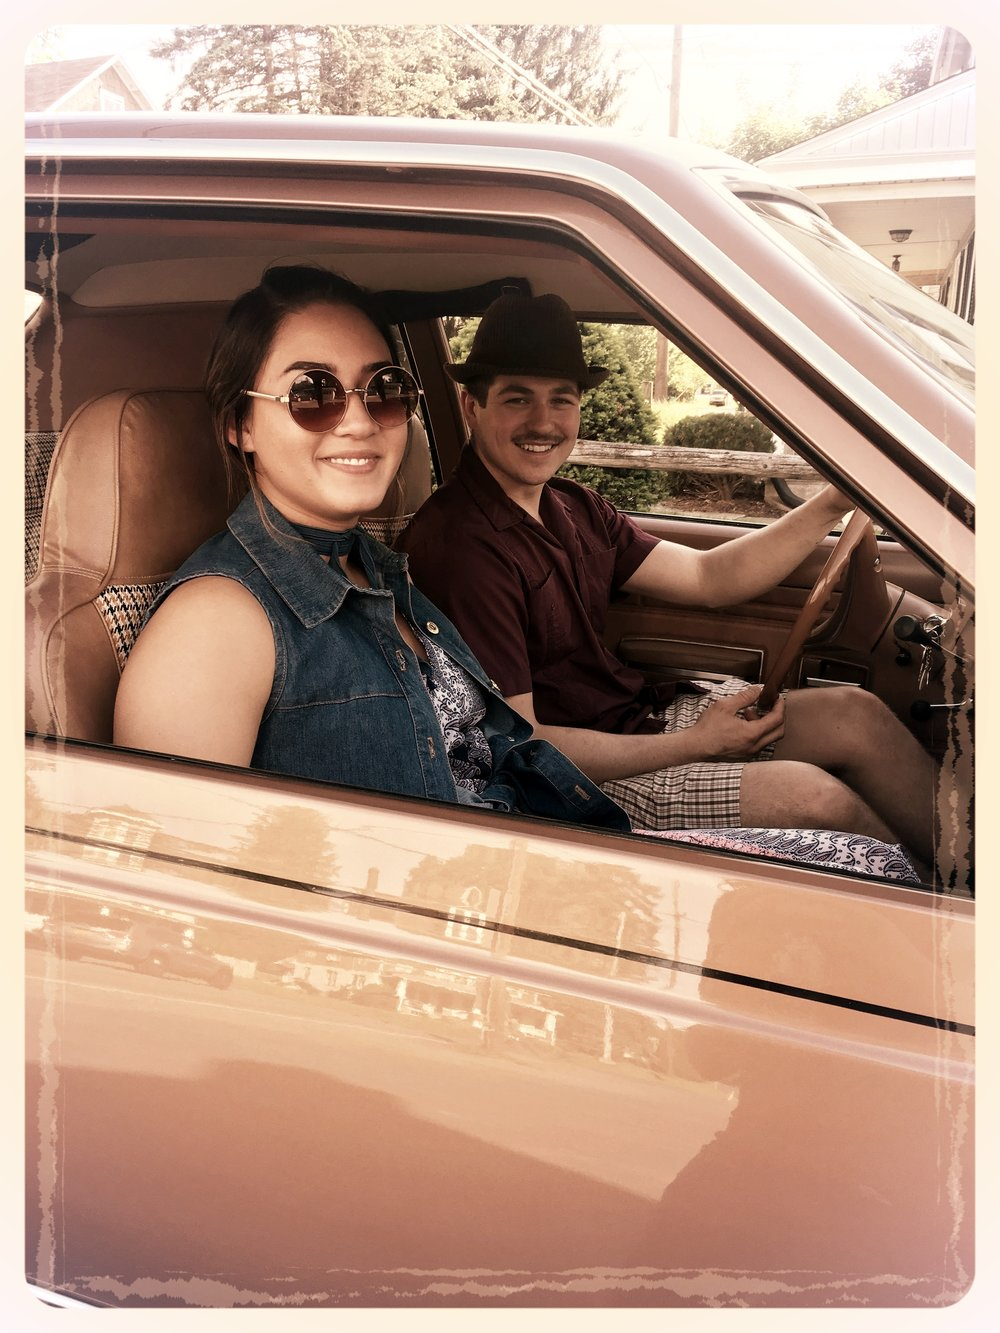 Allie & Nick, played the younger couple in the story. They really nailed the 70s look!